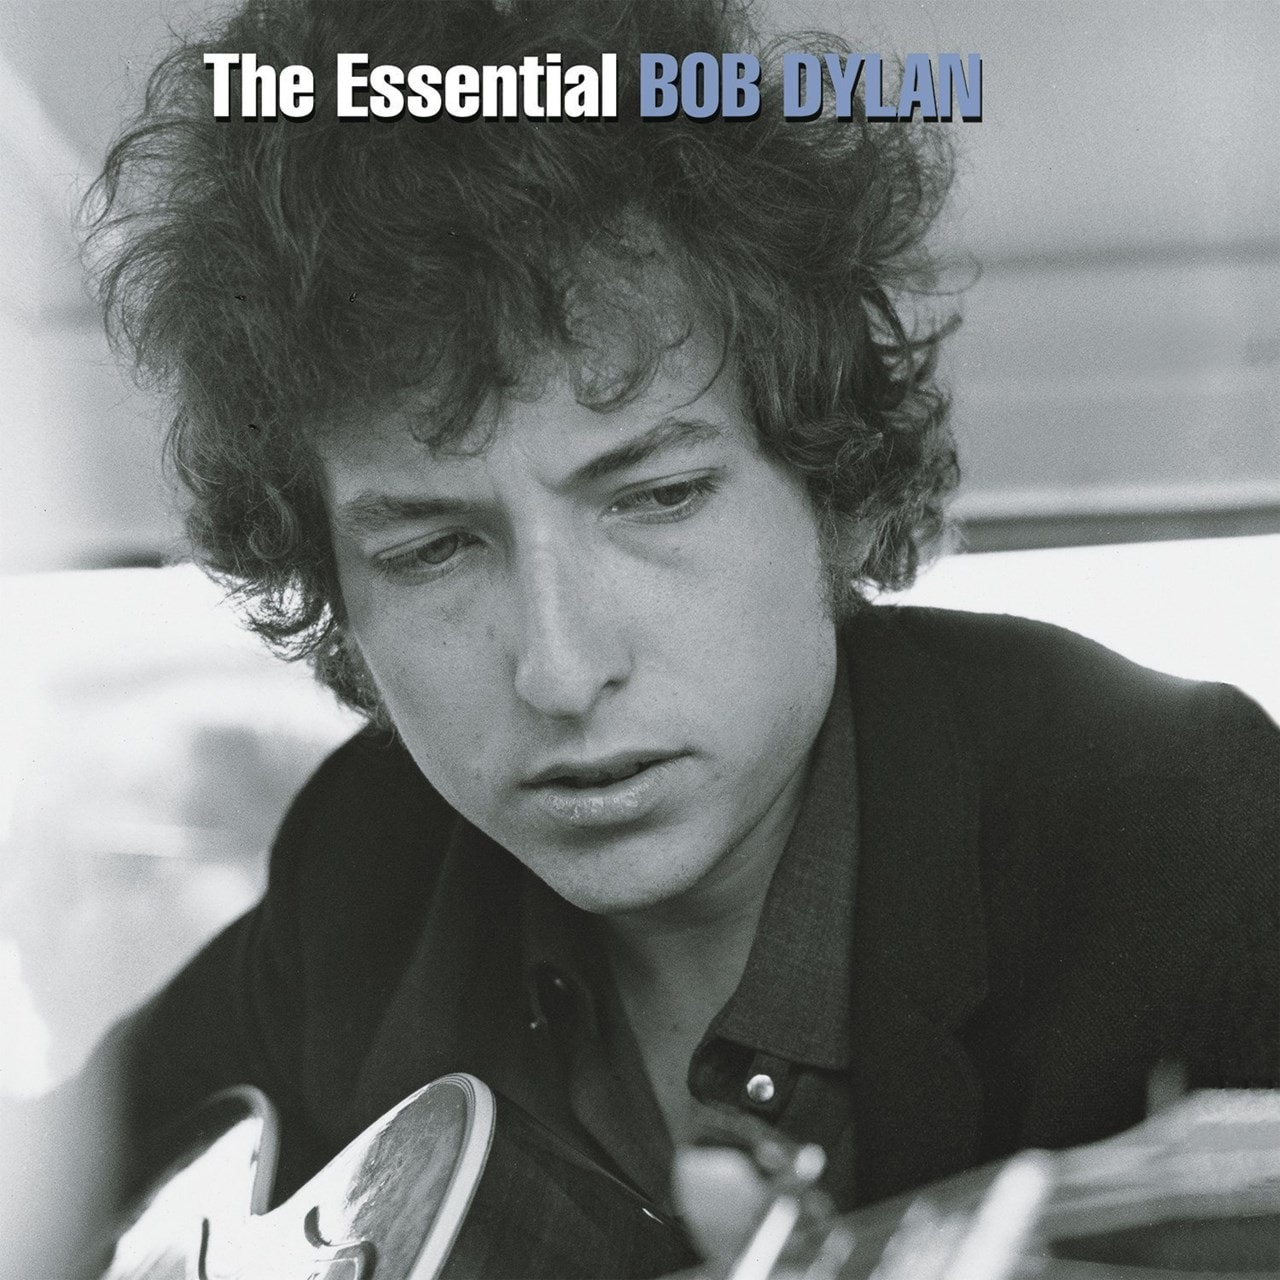 The Essential Bob Dylan - 1